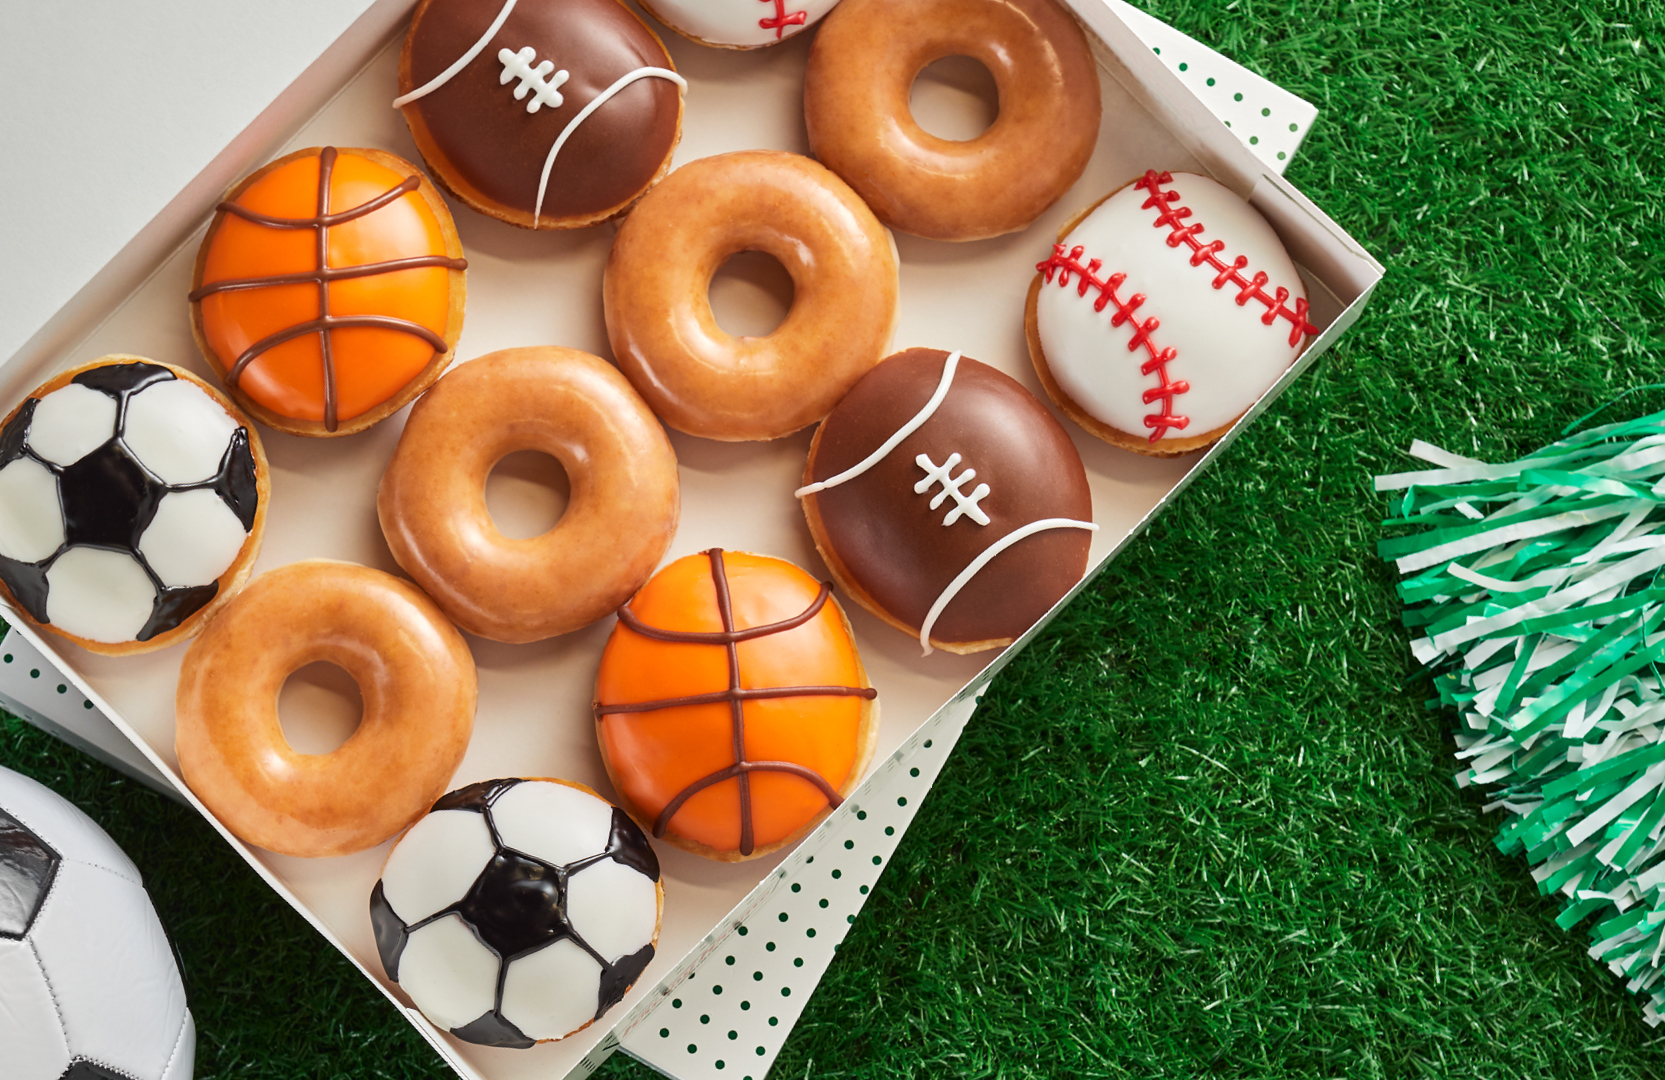 Krispy Kreme's limited-time Sports Dozen